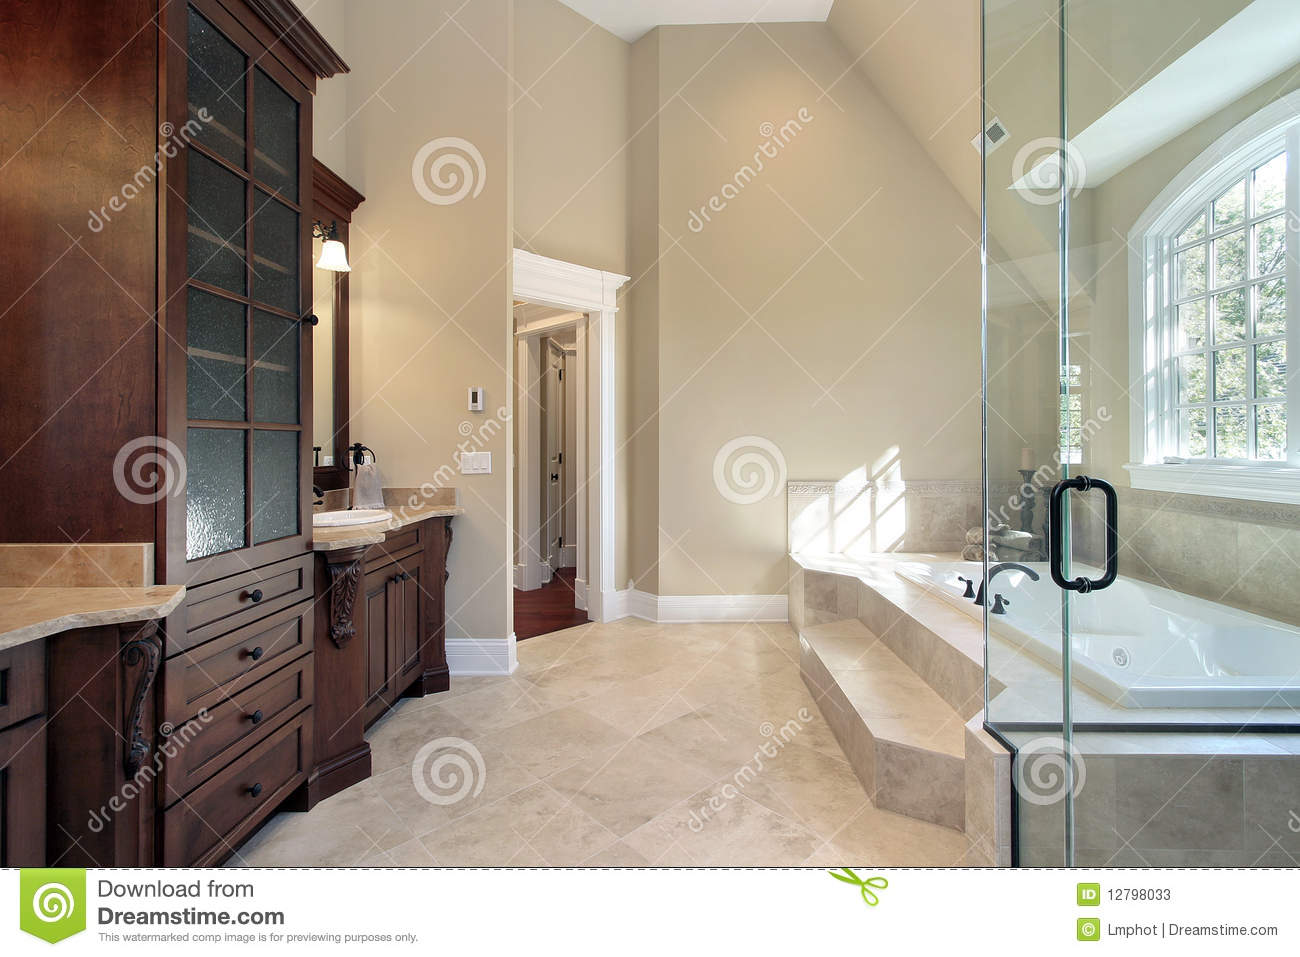 Master Bath With Step Up Tub Stock Image - Image of interior ...